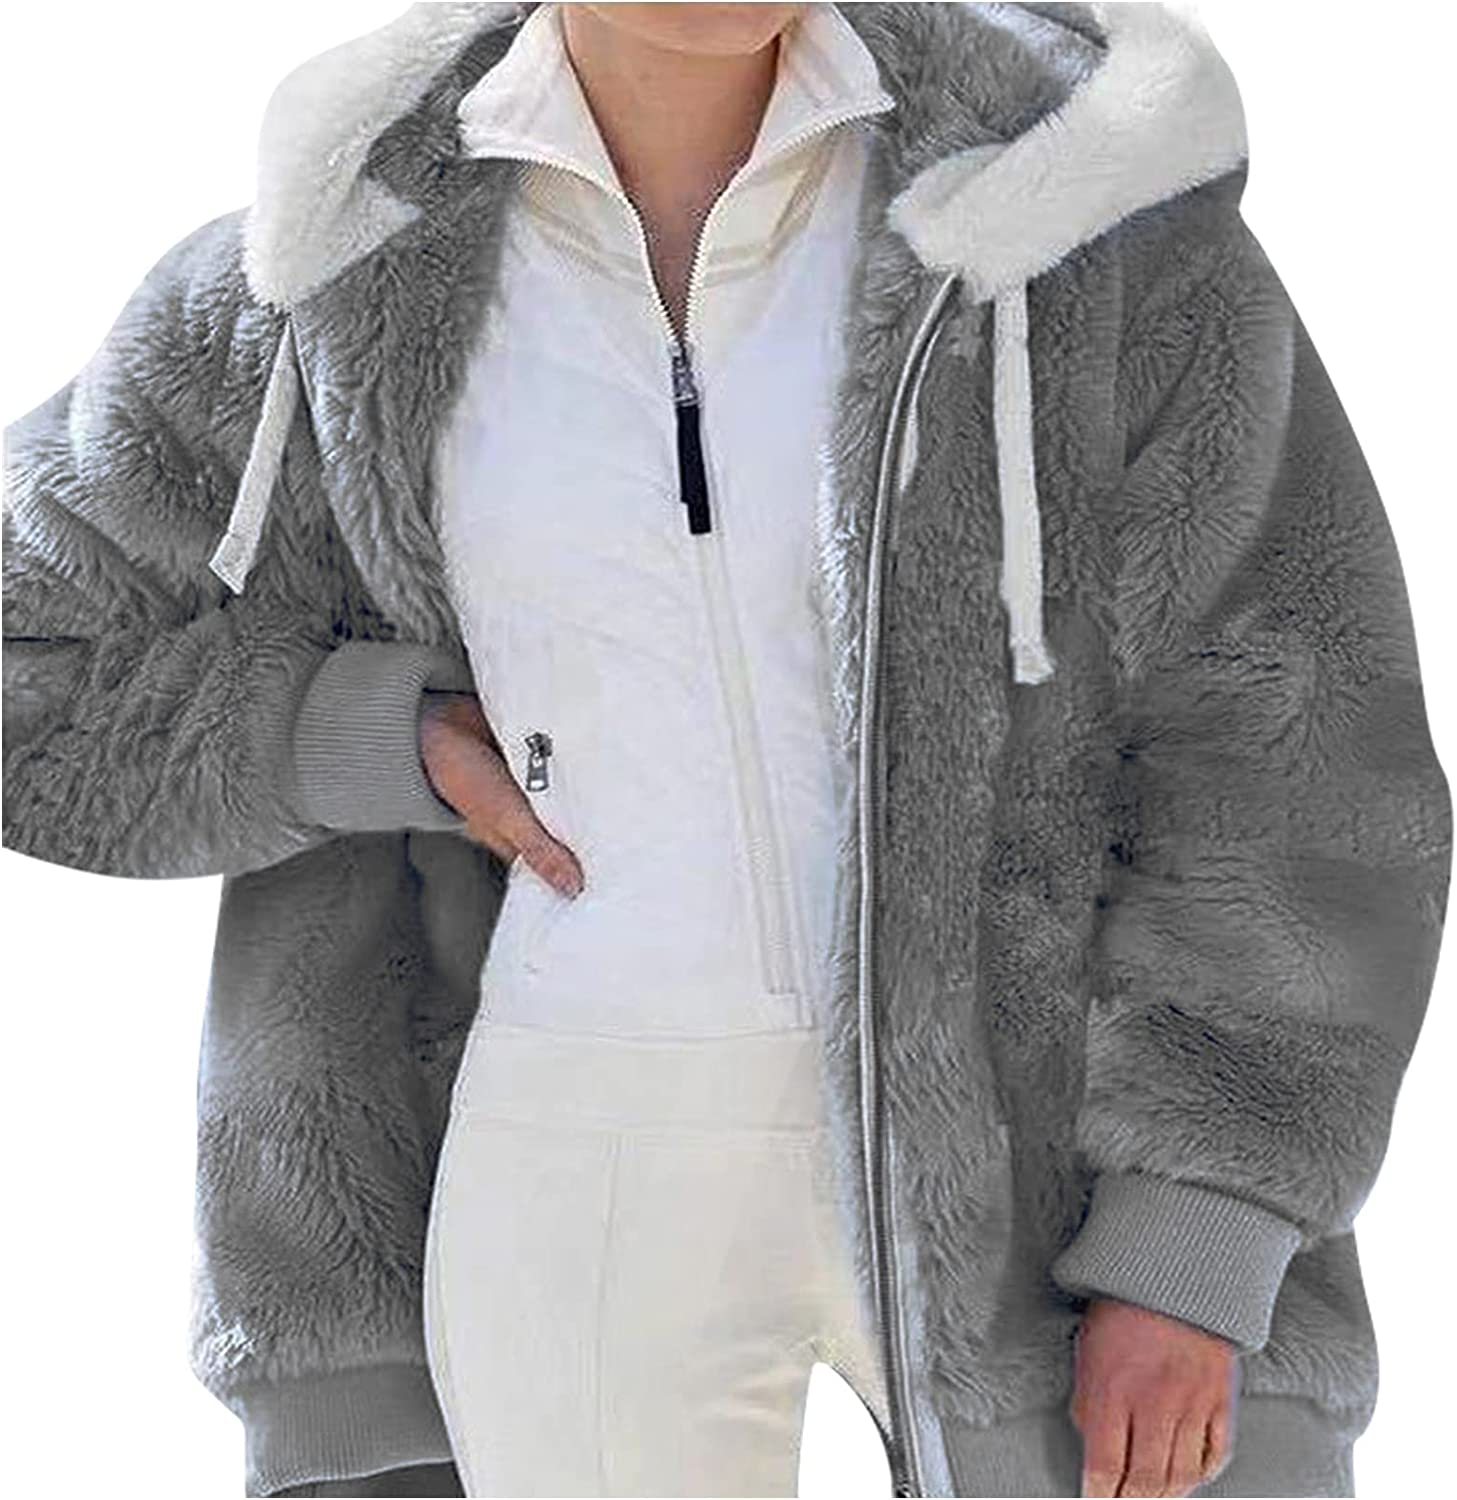 Women's Hooded Winter Jacket Zip Up Plus Size Faux Shearling Fluffy Warm Coats Long Sleeve Comfort Tops with Pockets